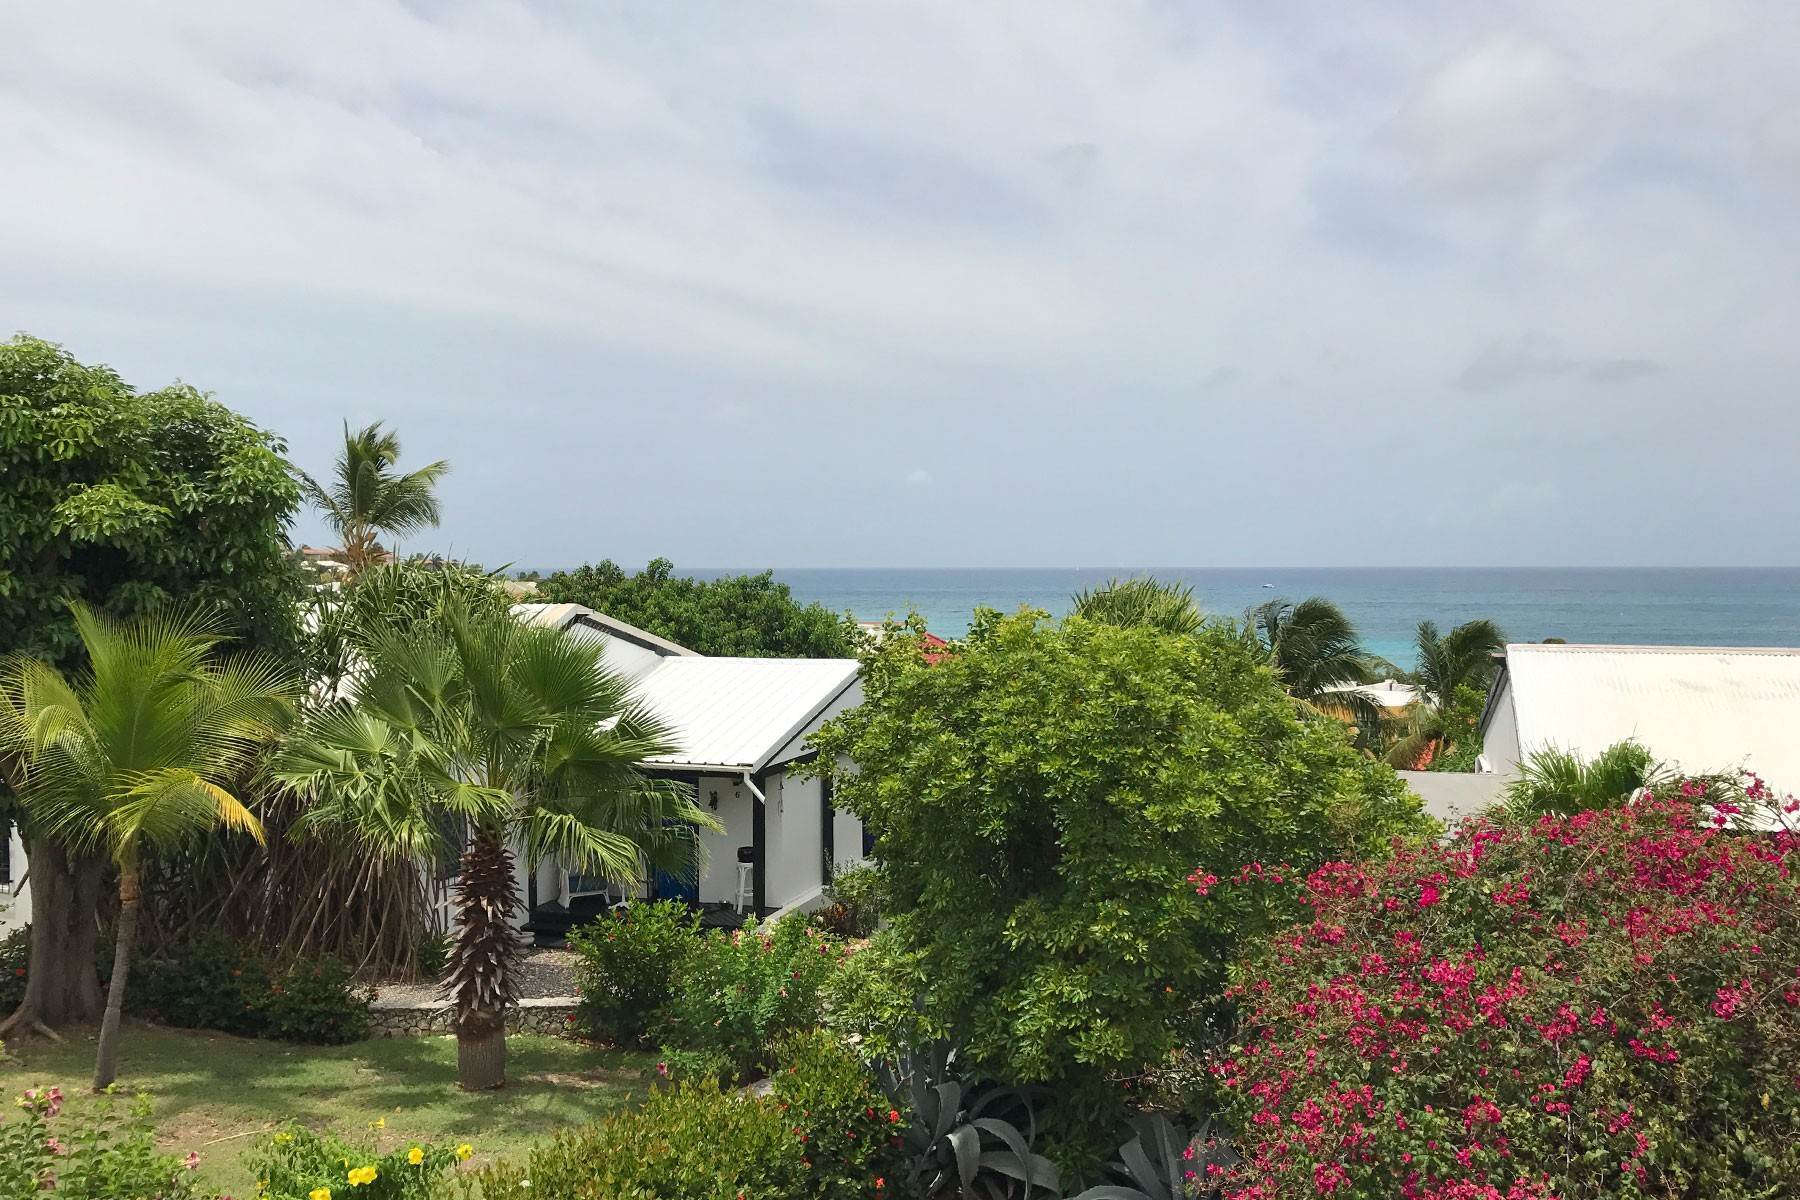 Single Family Homes for Sale at Pelican Key View Pelican Key, St. Maarten